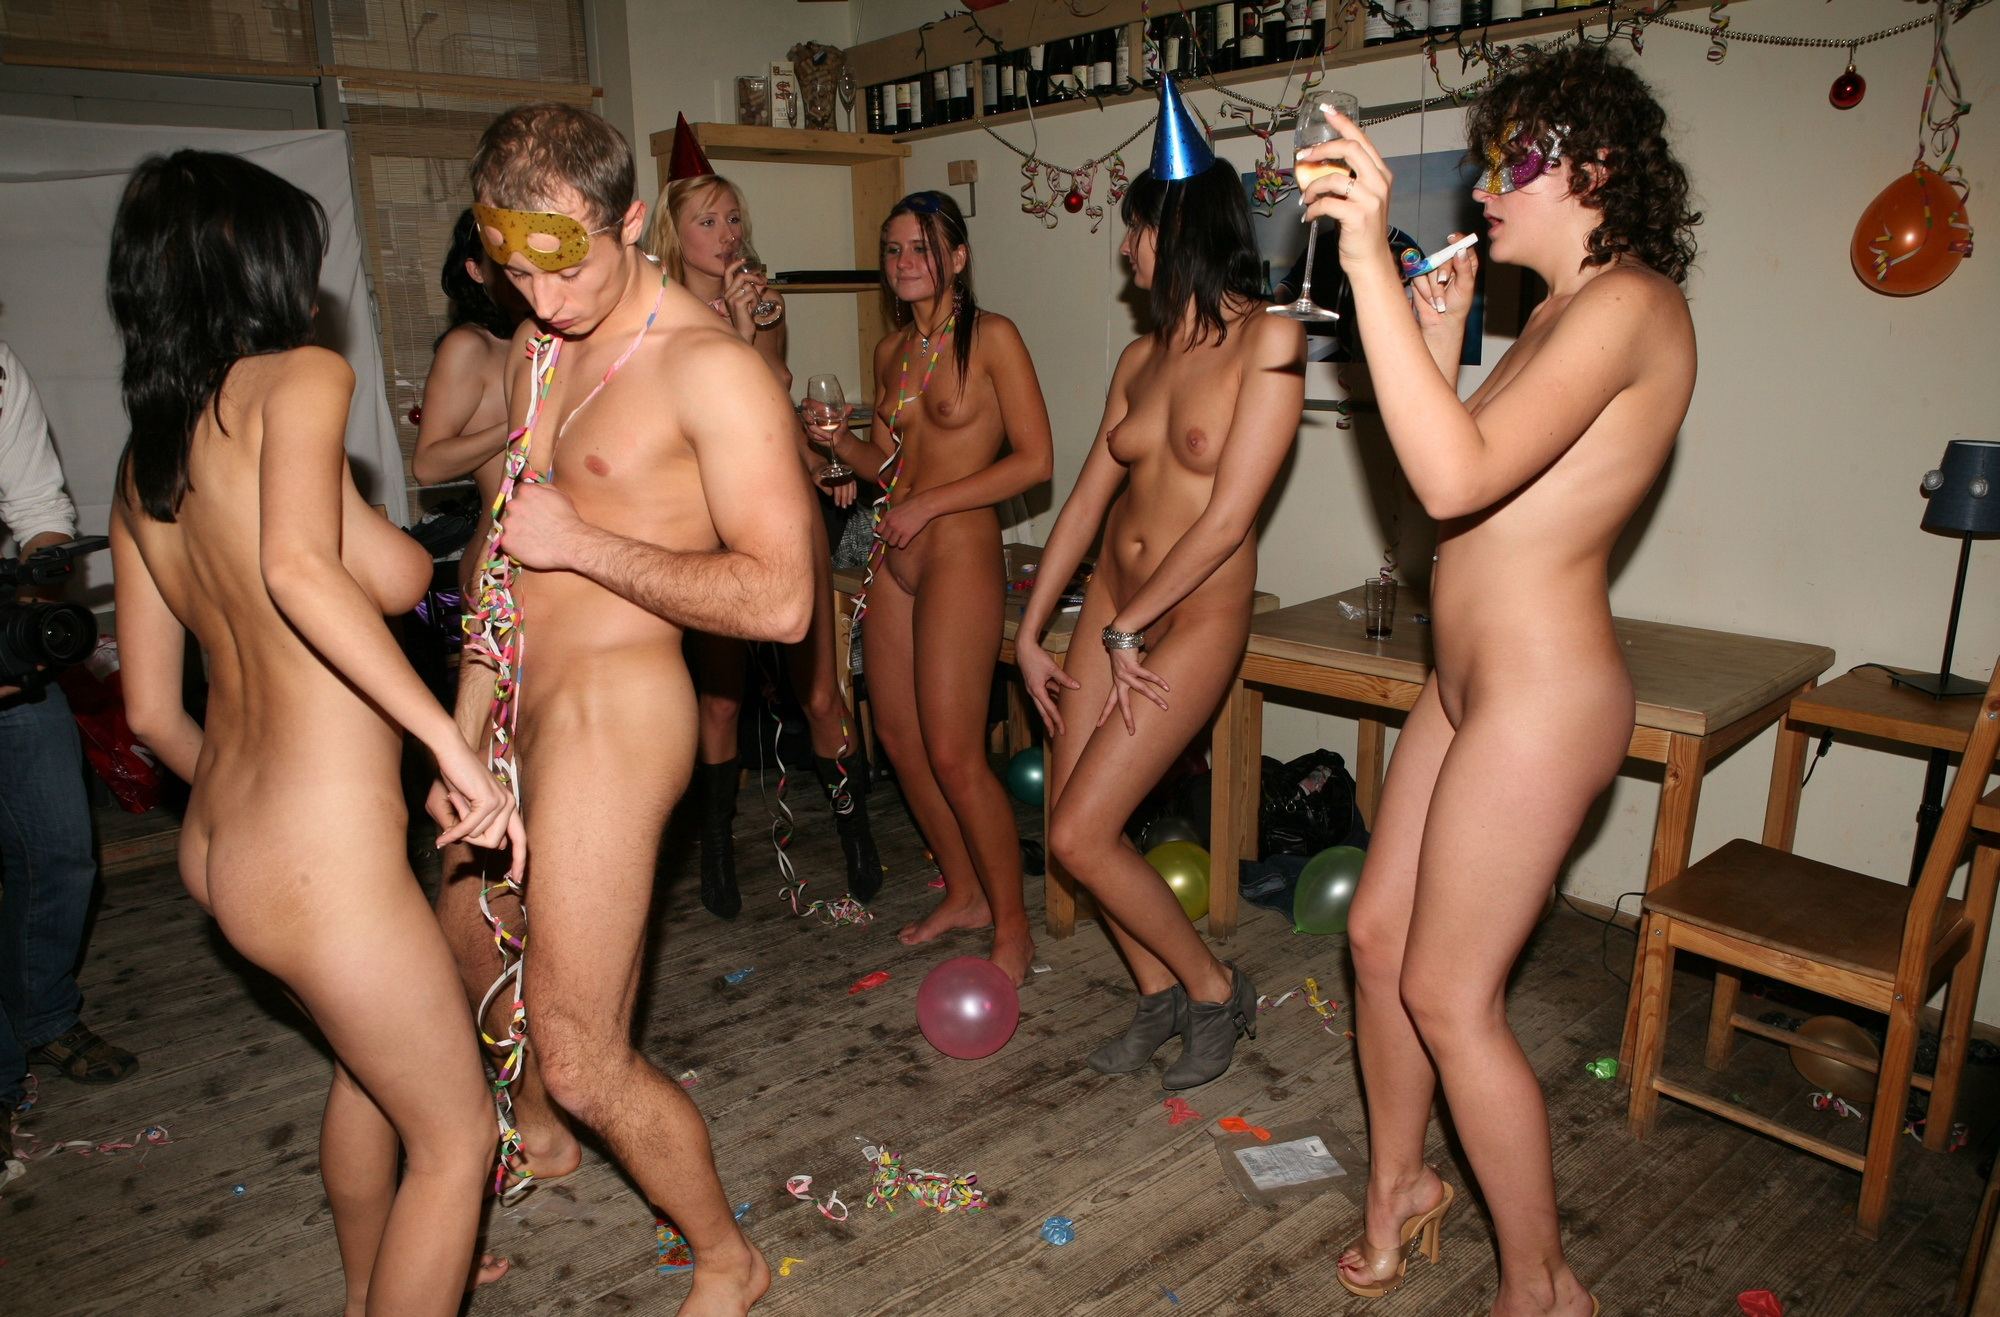 The same. Family nudist party